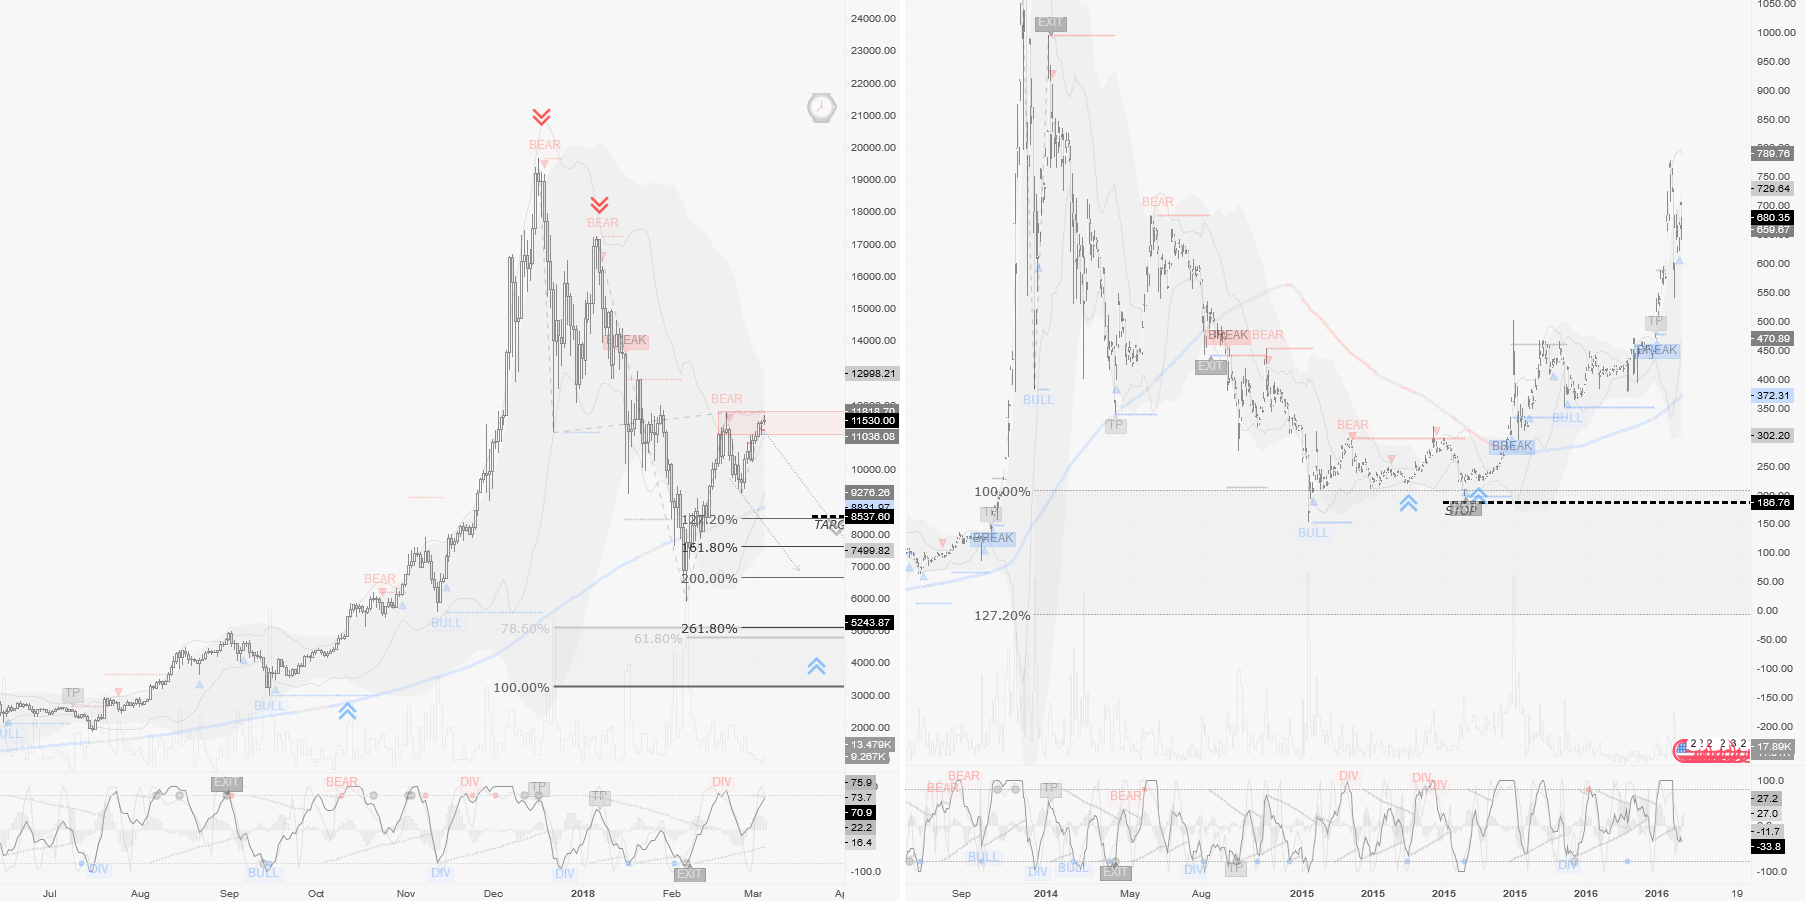 BTCUSD / D1 : Market replay of a crash pattern compared to BTC